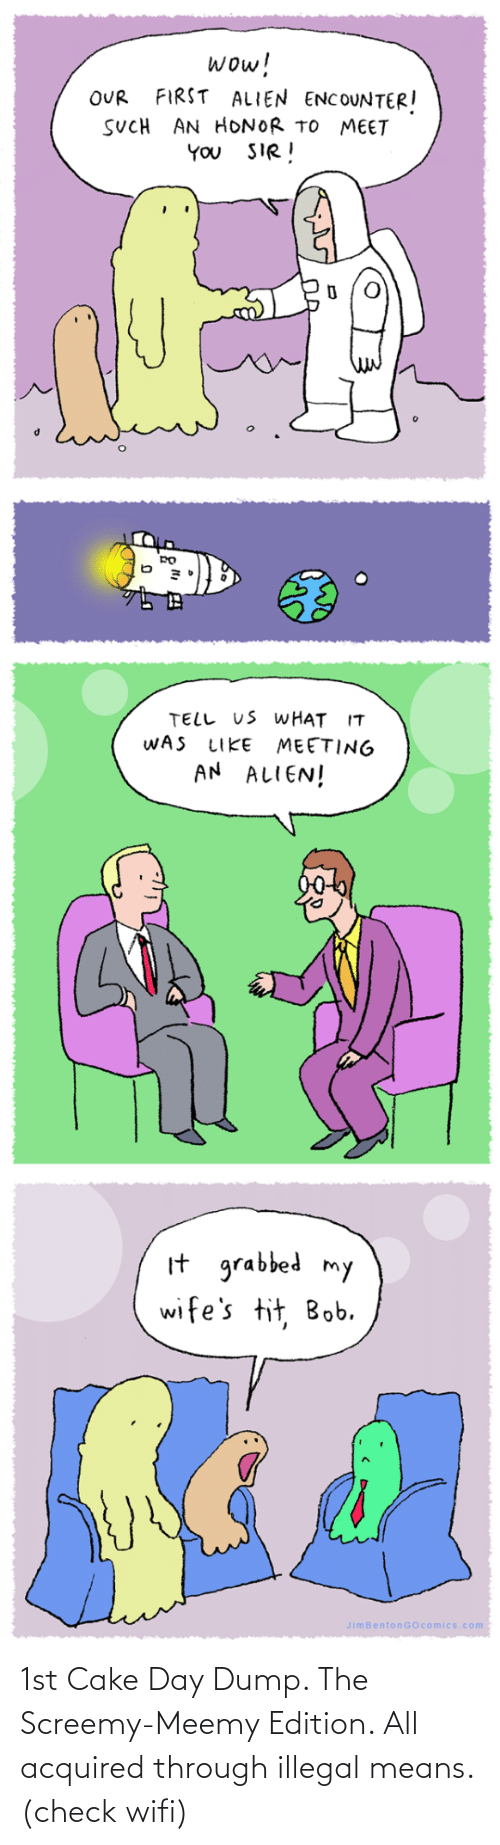 wifes: wow!  FIRST ALIEN ENCOUNTER!  OUR  SUCH AN HONOR TO MEET  YOU SIR!  TELL US WHAT IT  WAS  MEETING  AN ALIEN!  LIKE  It grabbed my  wife's tit, Bob.  JimBentonGOcomics.com 1st Cake Day Dump. The Screemy-Meemy Edition. All acquired through illegal means. (check wifi)